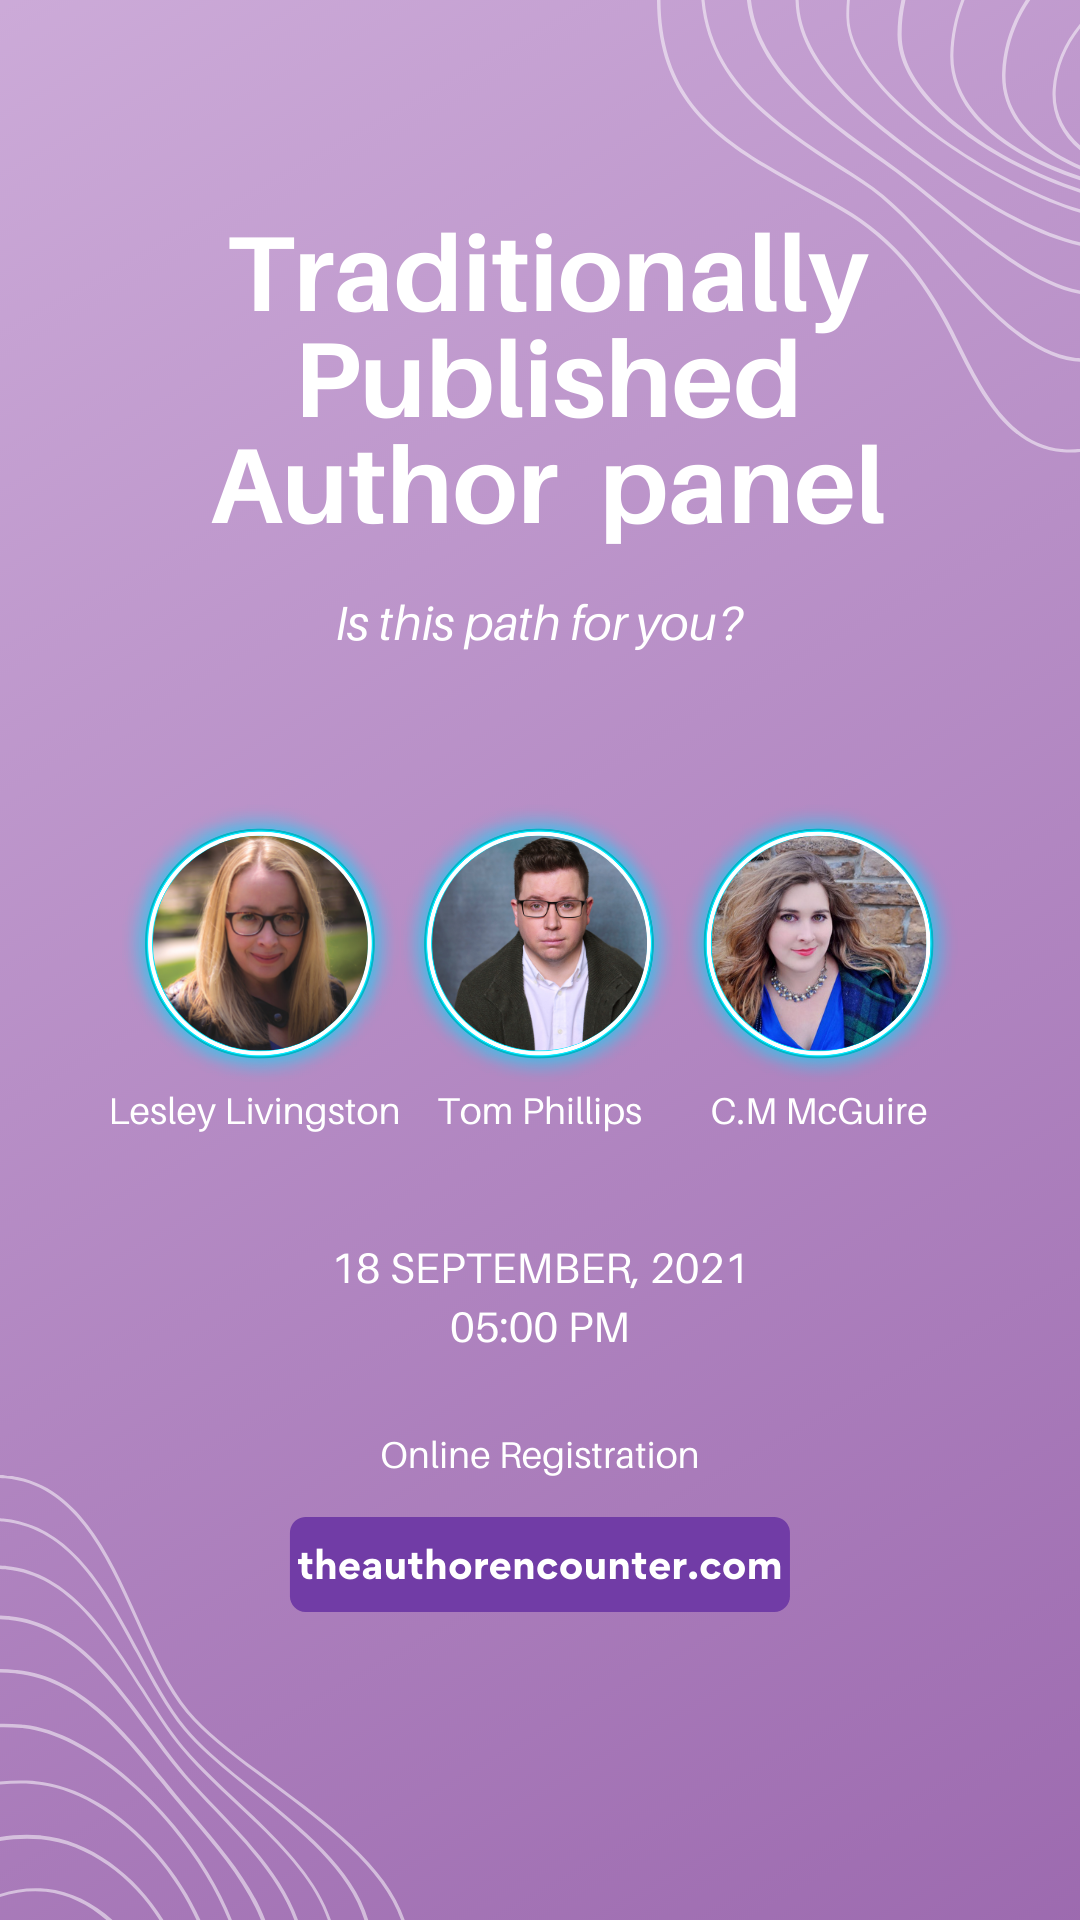 Pinterest pin of traditional published author panel